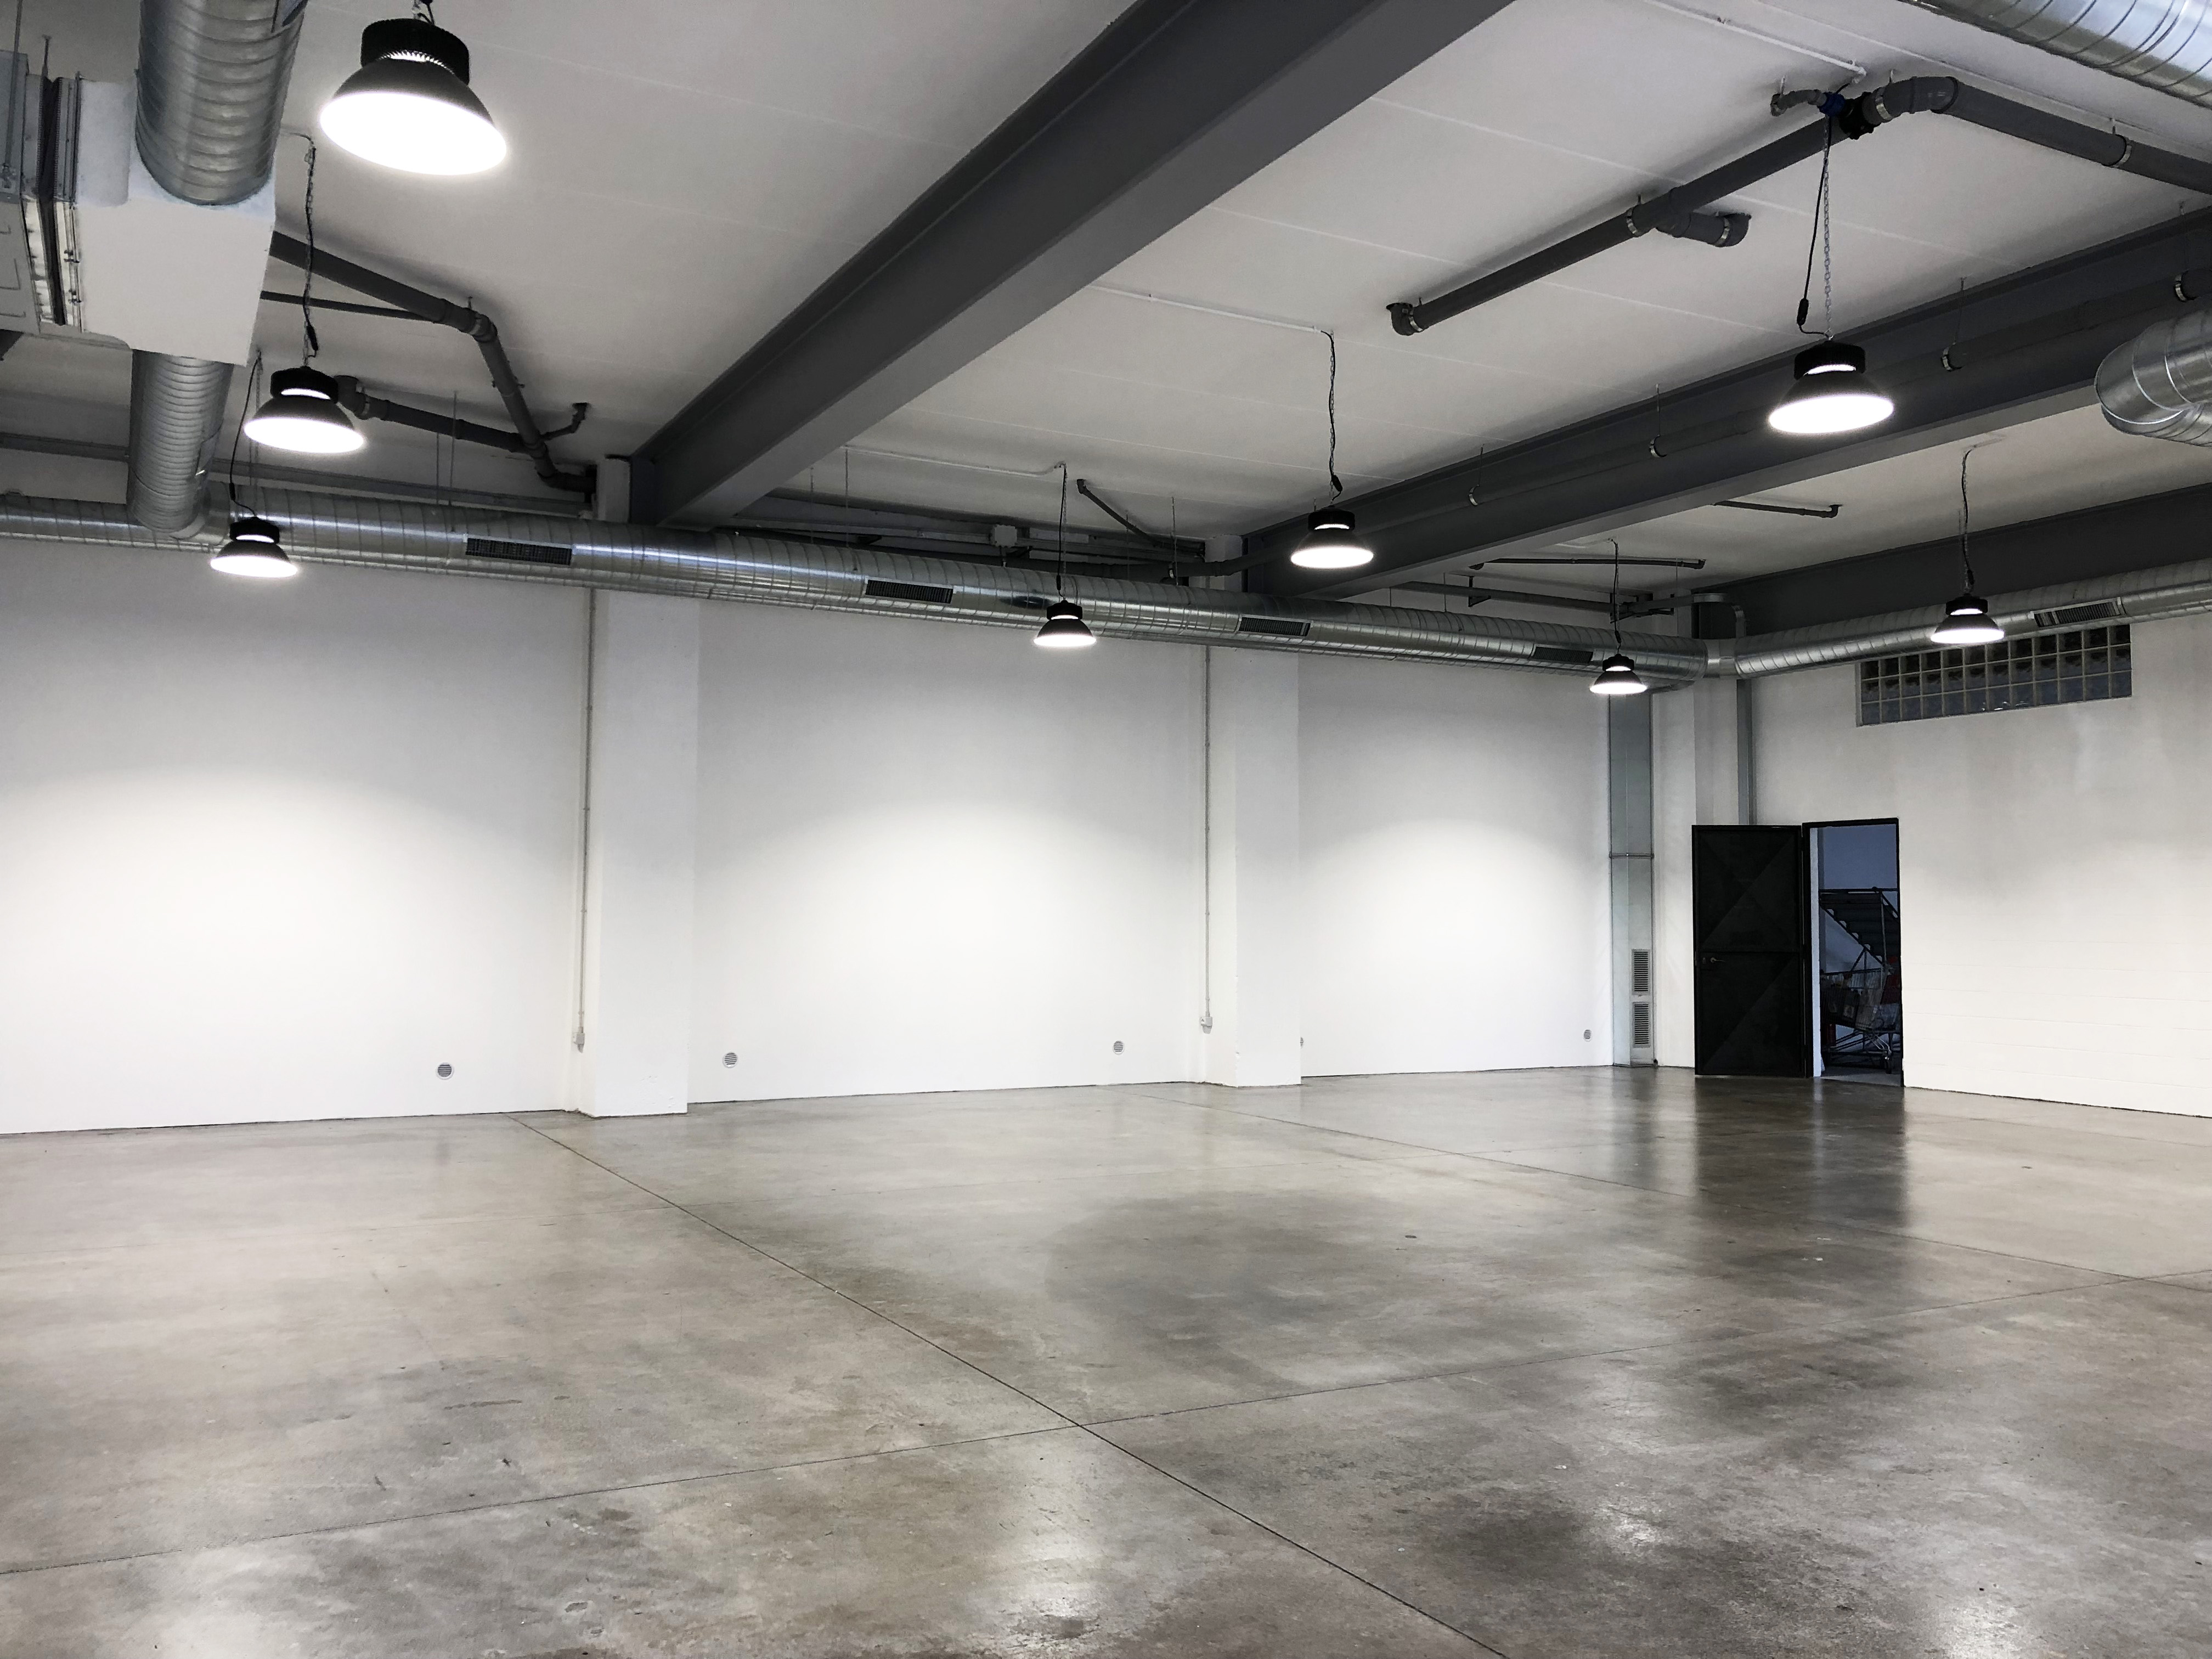 Officina3 - Open space, Spazio industriale di 200mq in Via Tortona 31  | location disallestita 5